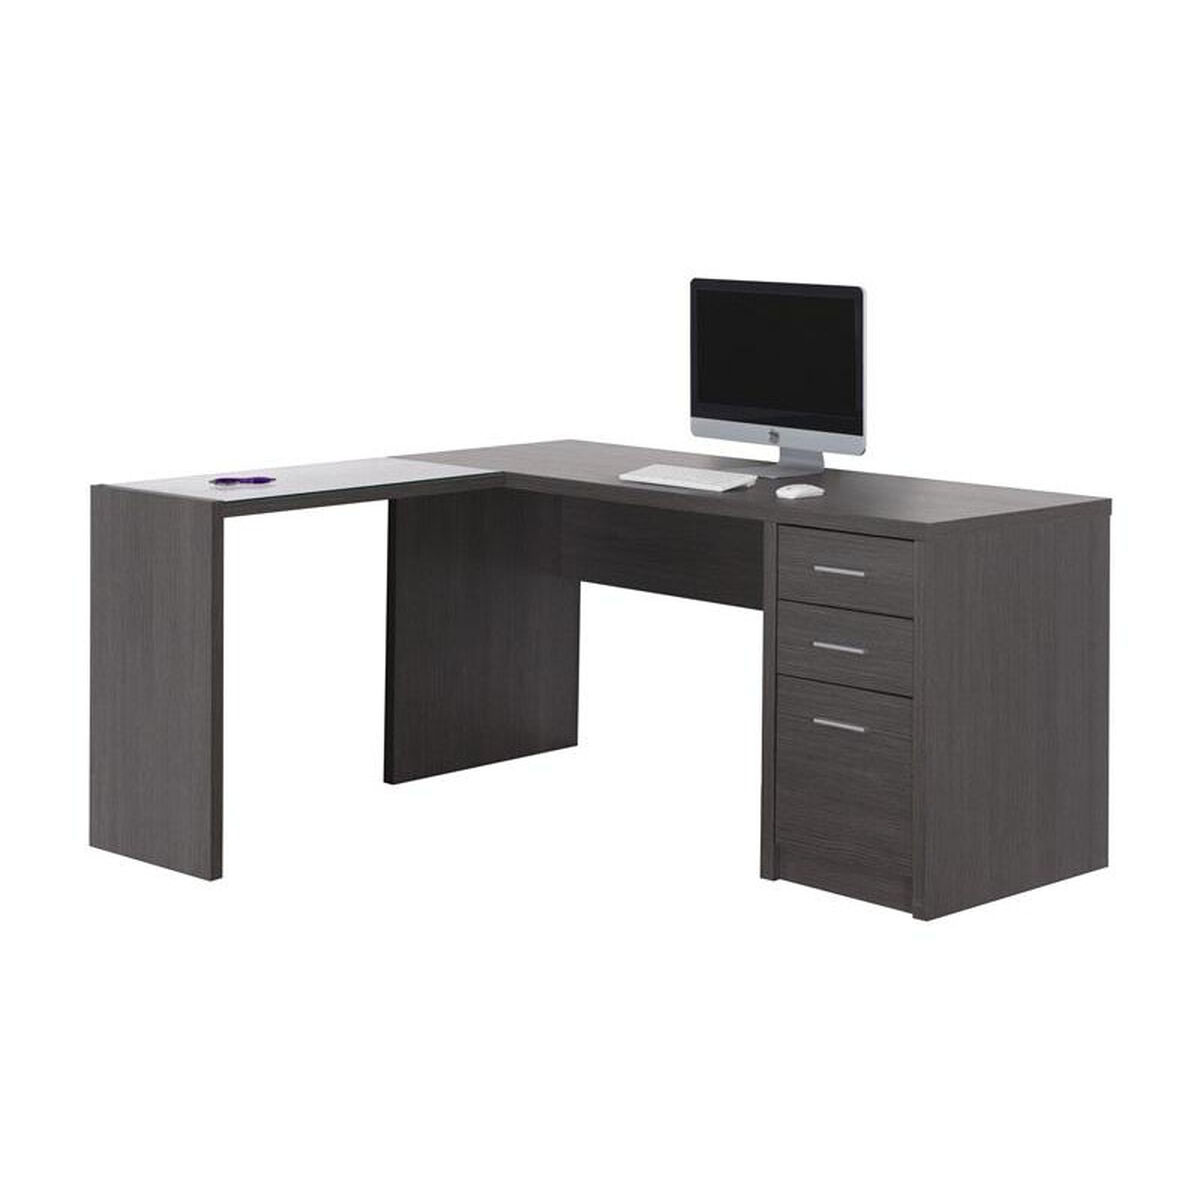 Our L Shaped Computer Desk With Tempered Glass Side Table Gray Is On